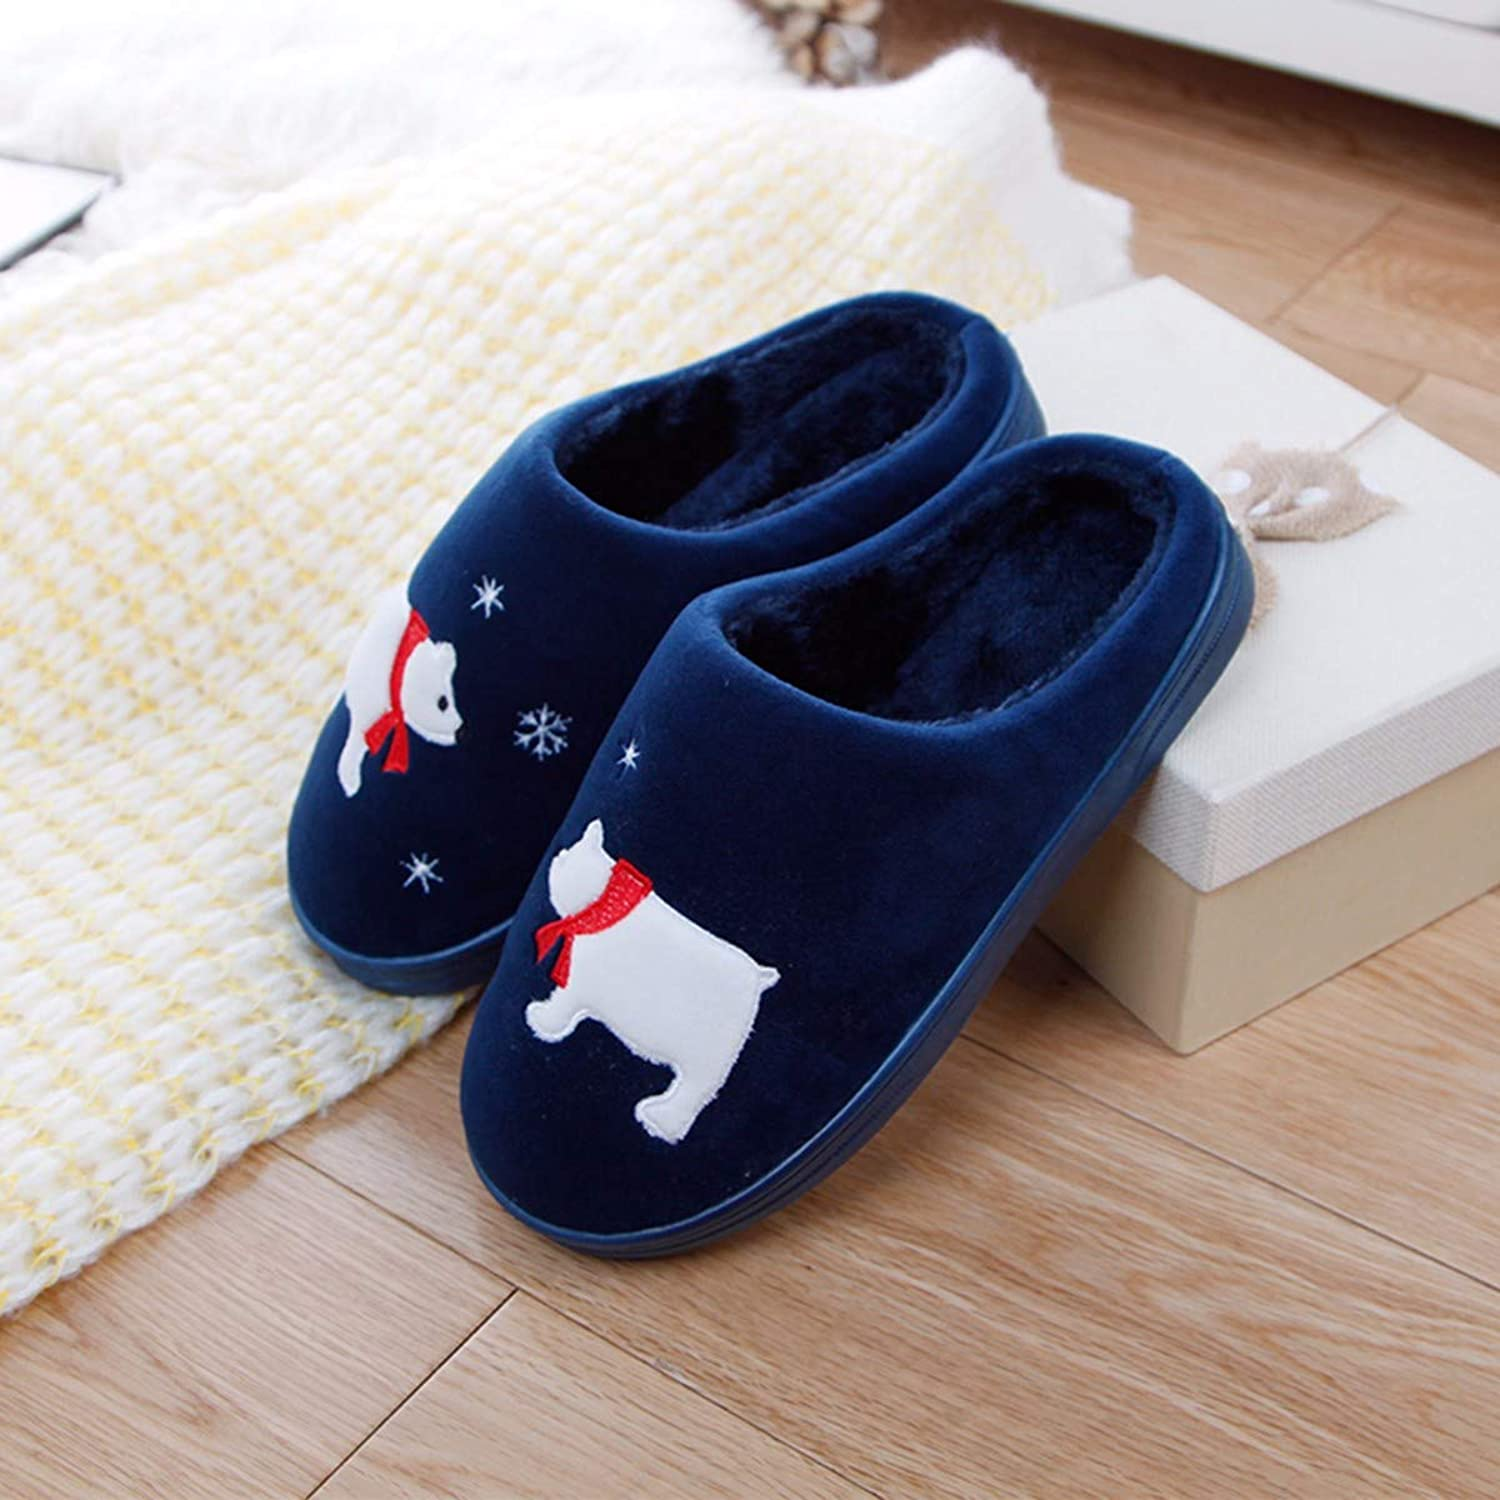 QPGGP-Slippers Winter Cotton Slippers and Indoor and Outdoor Couples with A Pair of Slippery, Warm and Thick Home.